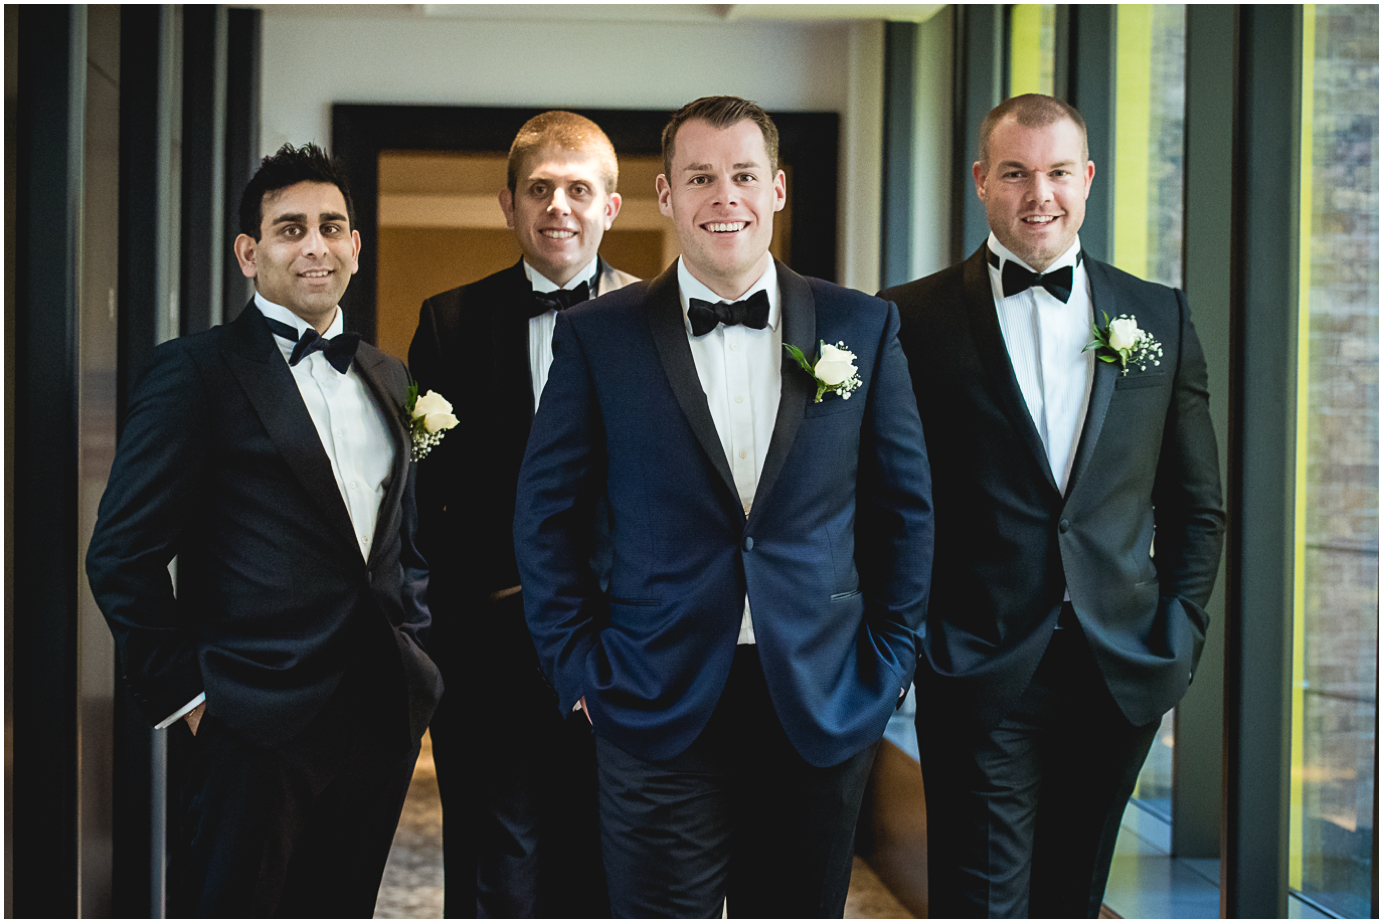 15 - Esmat and Angus - St. Ermin's Hotel London wedding photographer